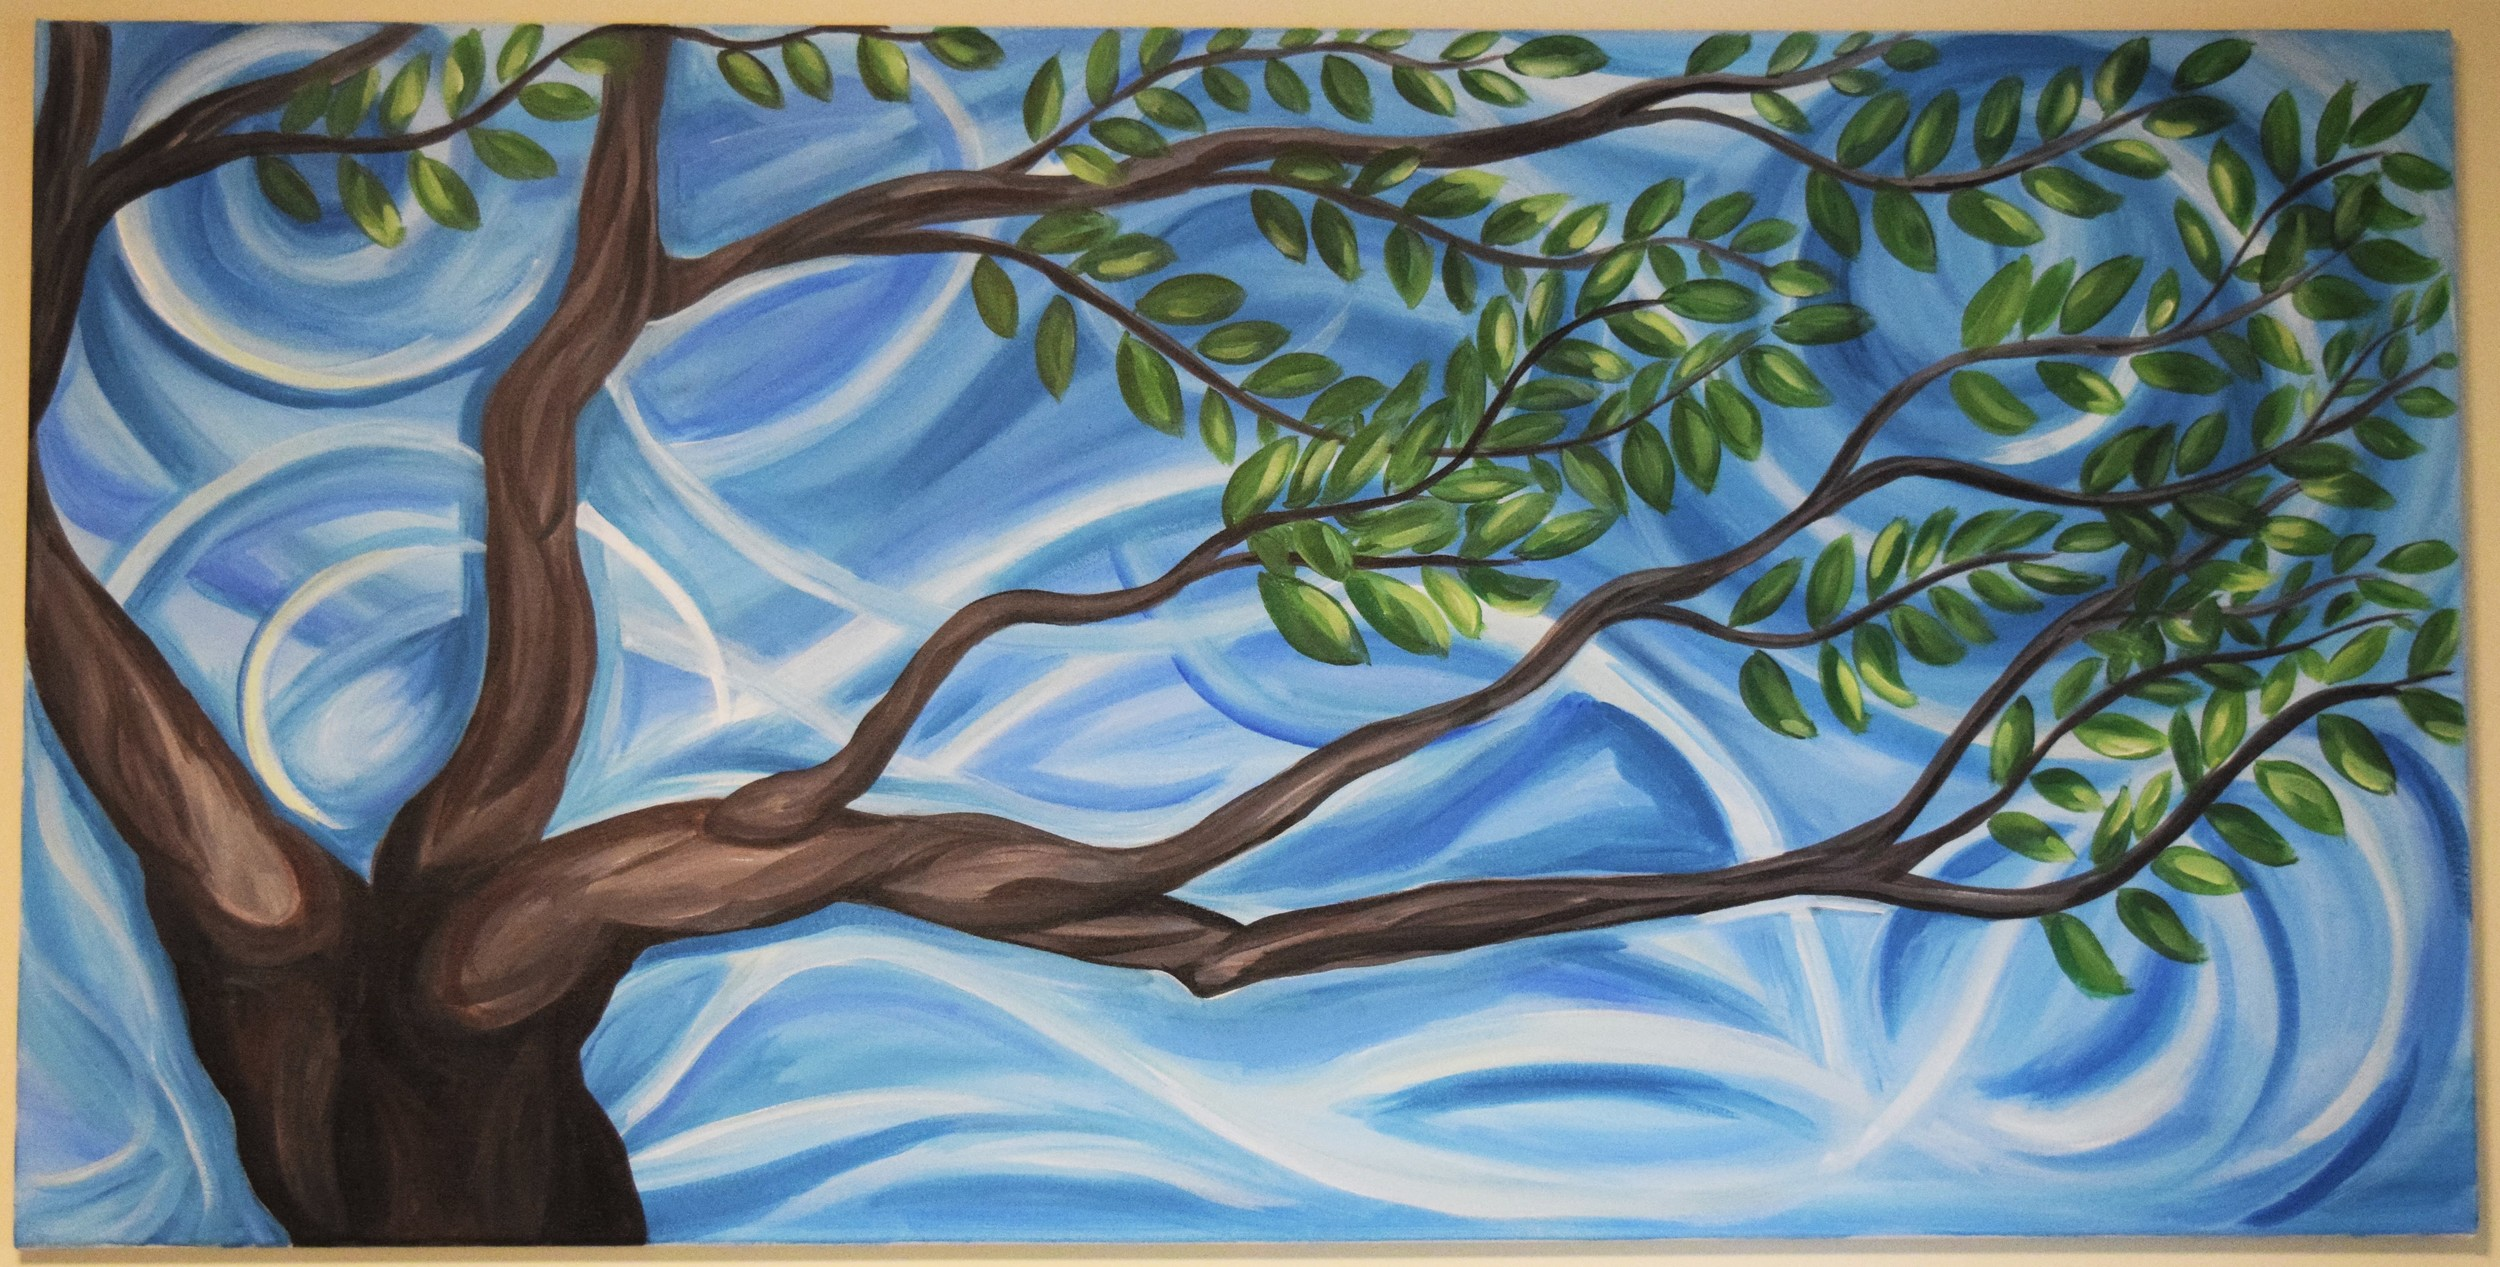 """Figure 3: Painting called """"Dancing Tree"""". Acrylic on canvas. 24x 48"""